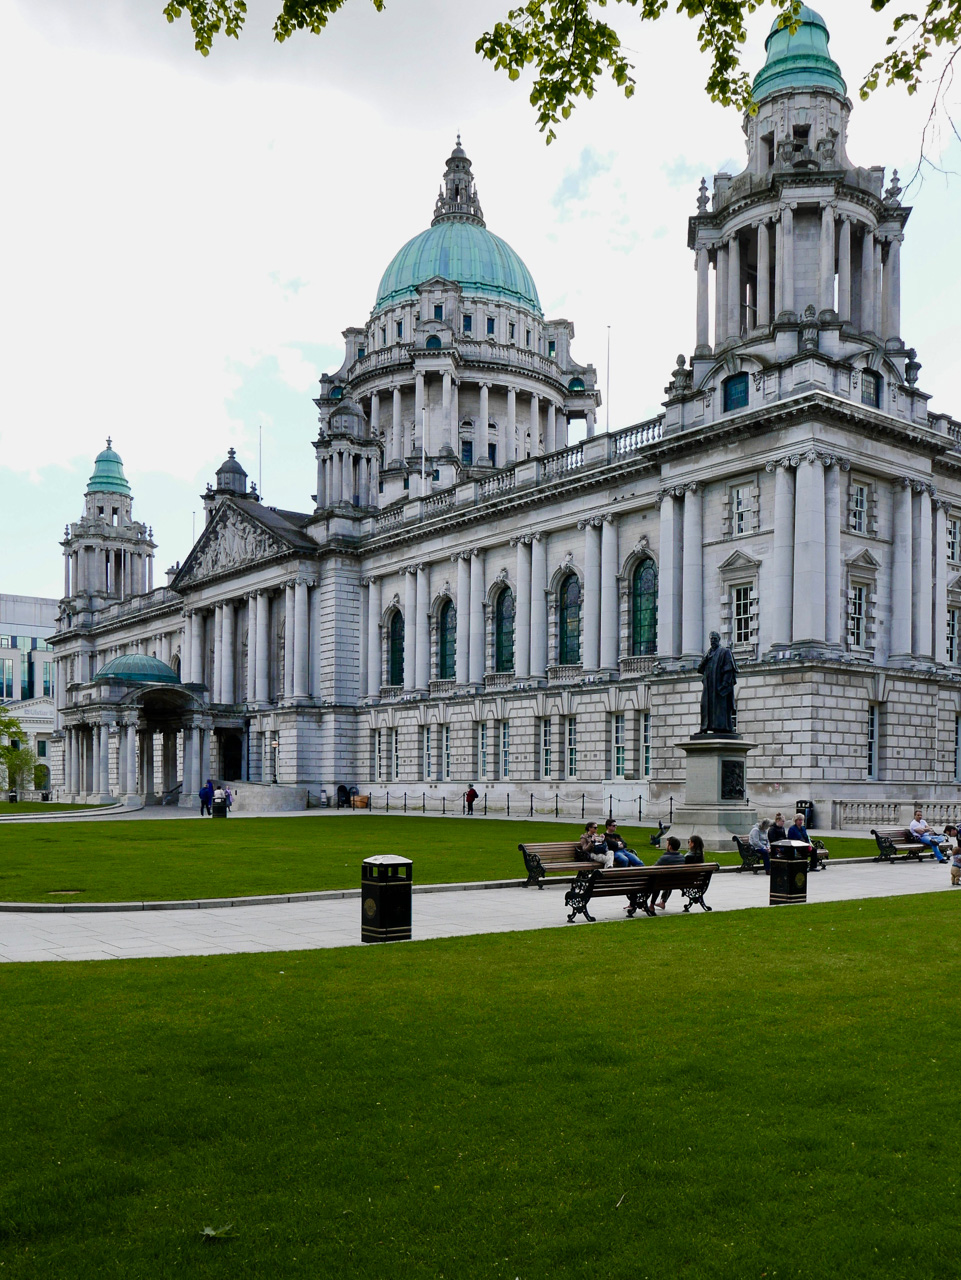 Cara Sharratt Travel - City Hall - Belfast, Northern Ireland